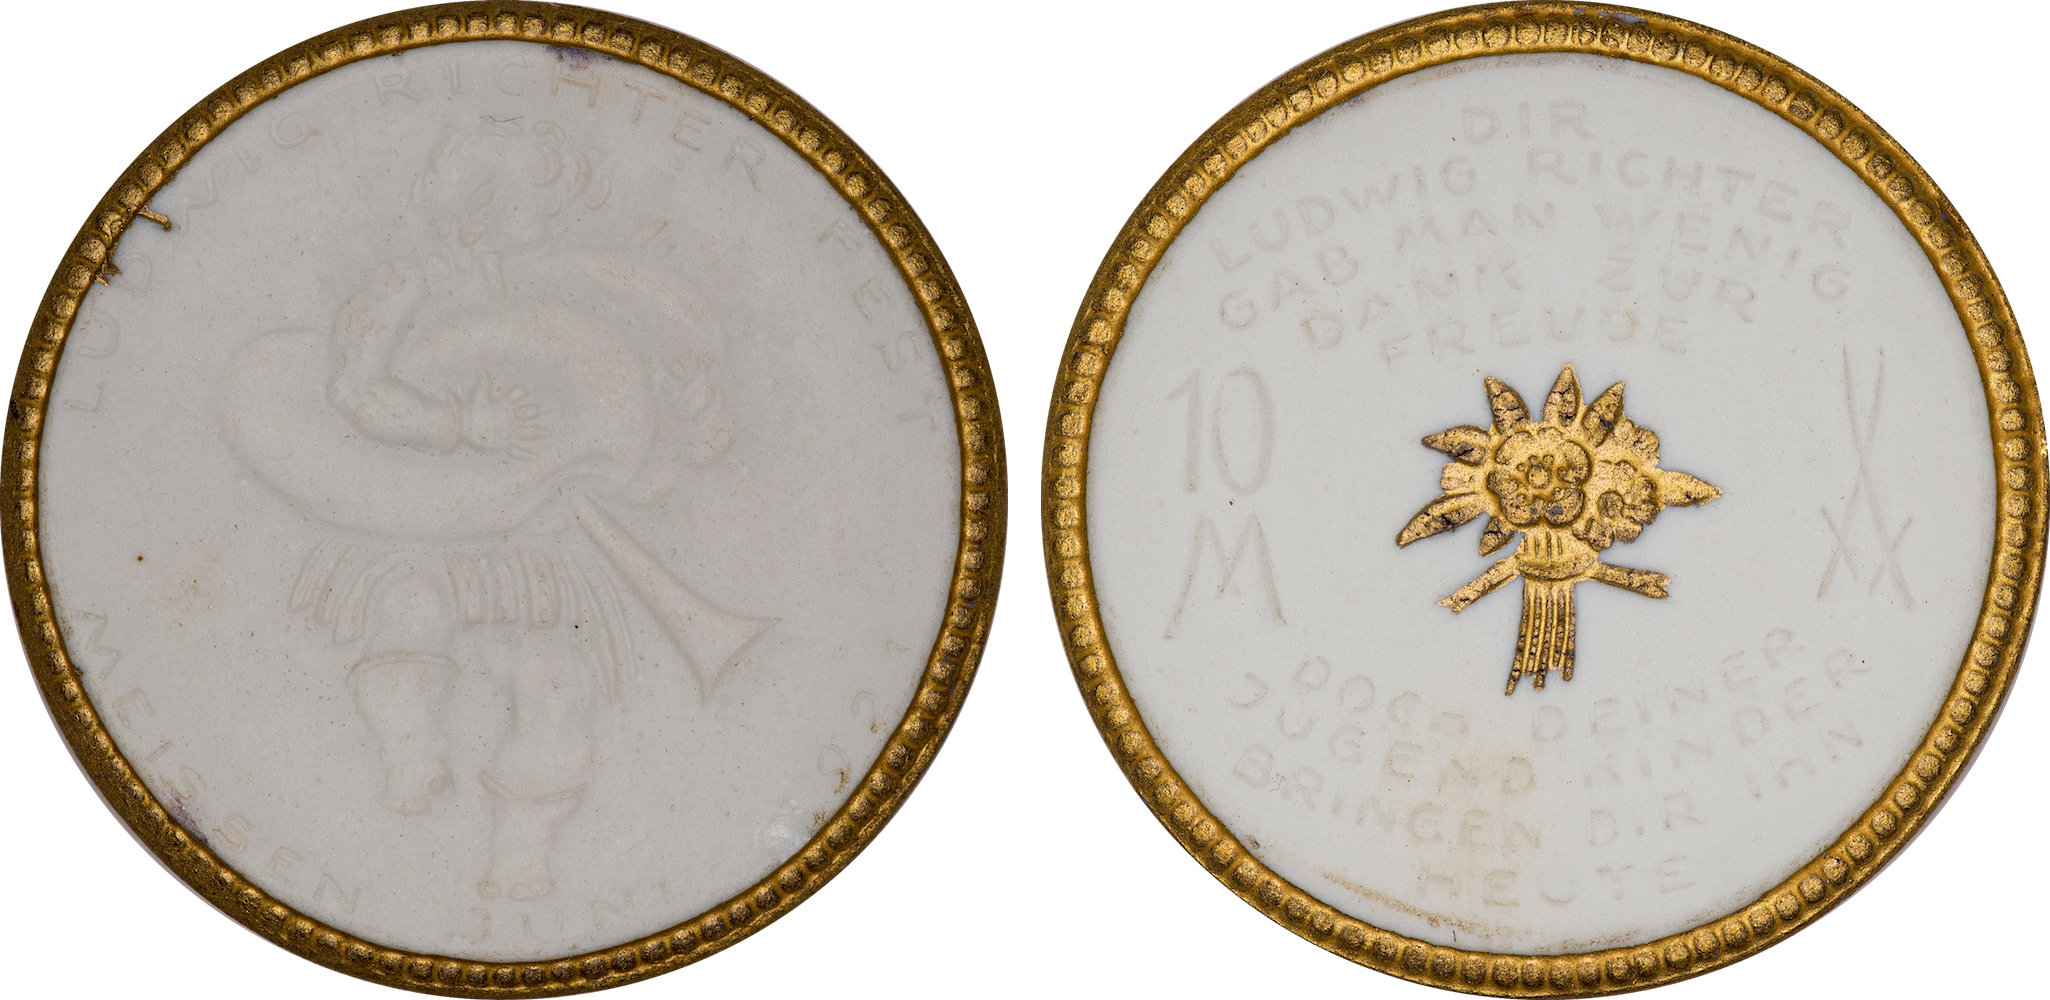 #8  Diameter: 39.5mm / Weight: 9.4g  Germany (Meissen) 1921 Porcelain 10 Mark Gilt Medal  Scheuch #381q  Mintage: 1,001 - 3,000